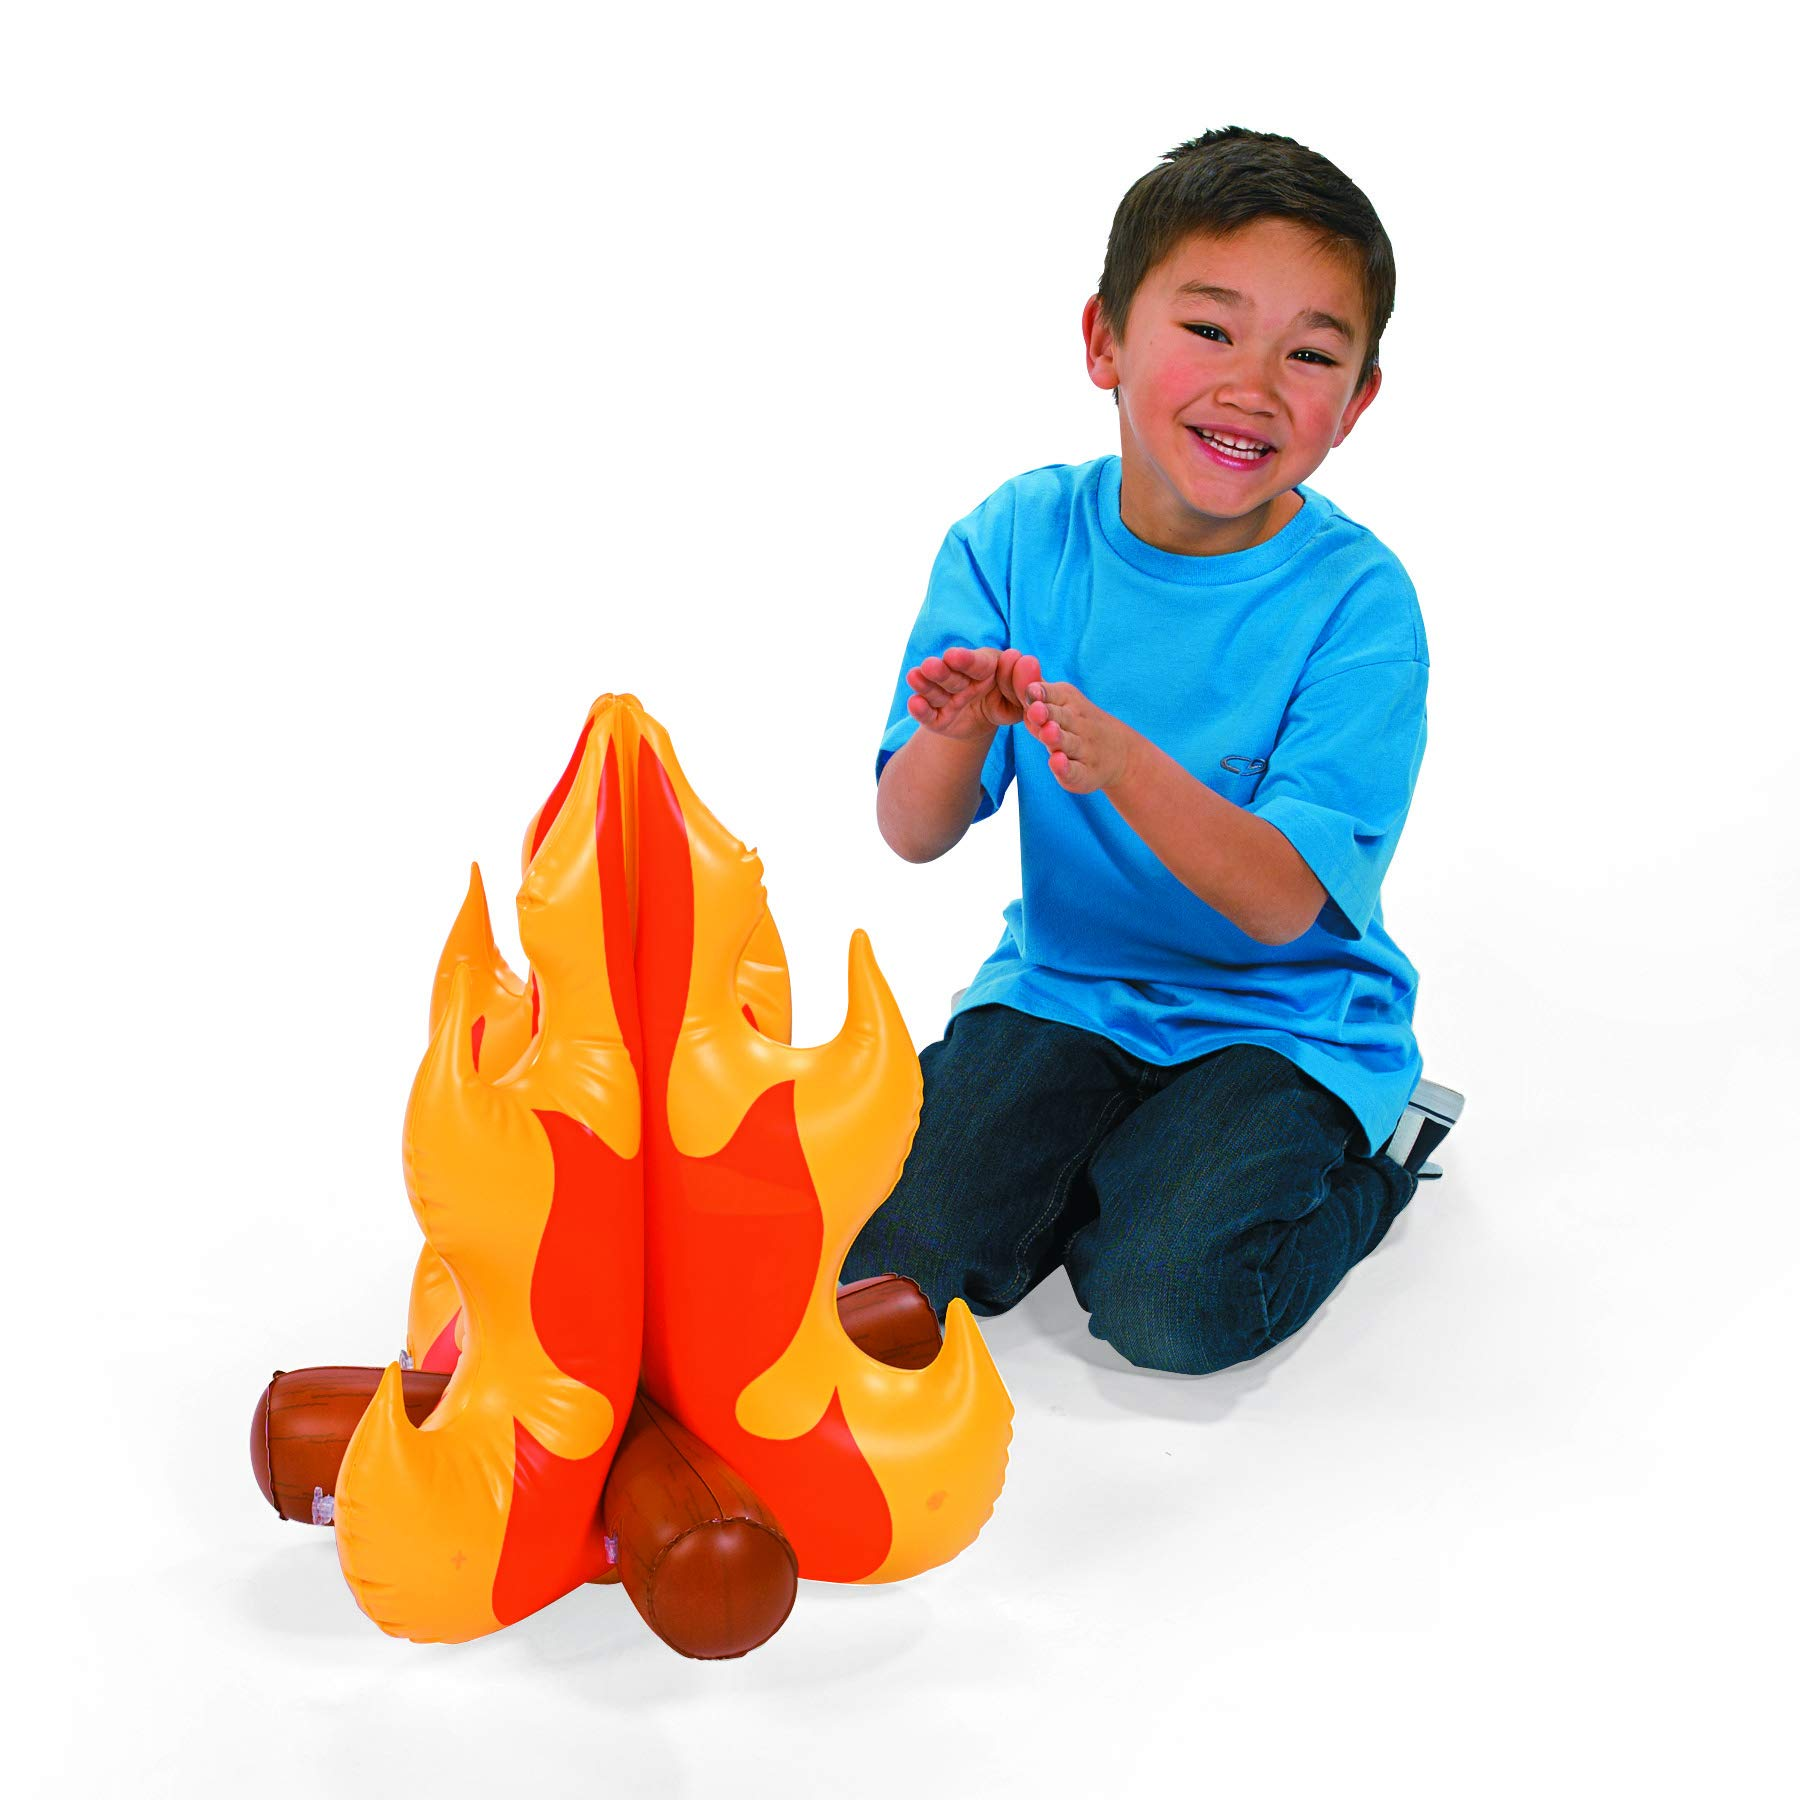 Fun Express Inflatable Campfire 18''x16'' (Pack of 2) by Fun Express (Image #1)